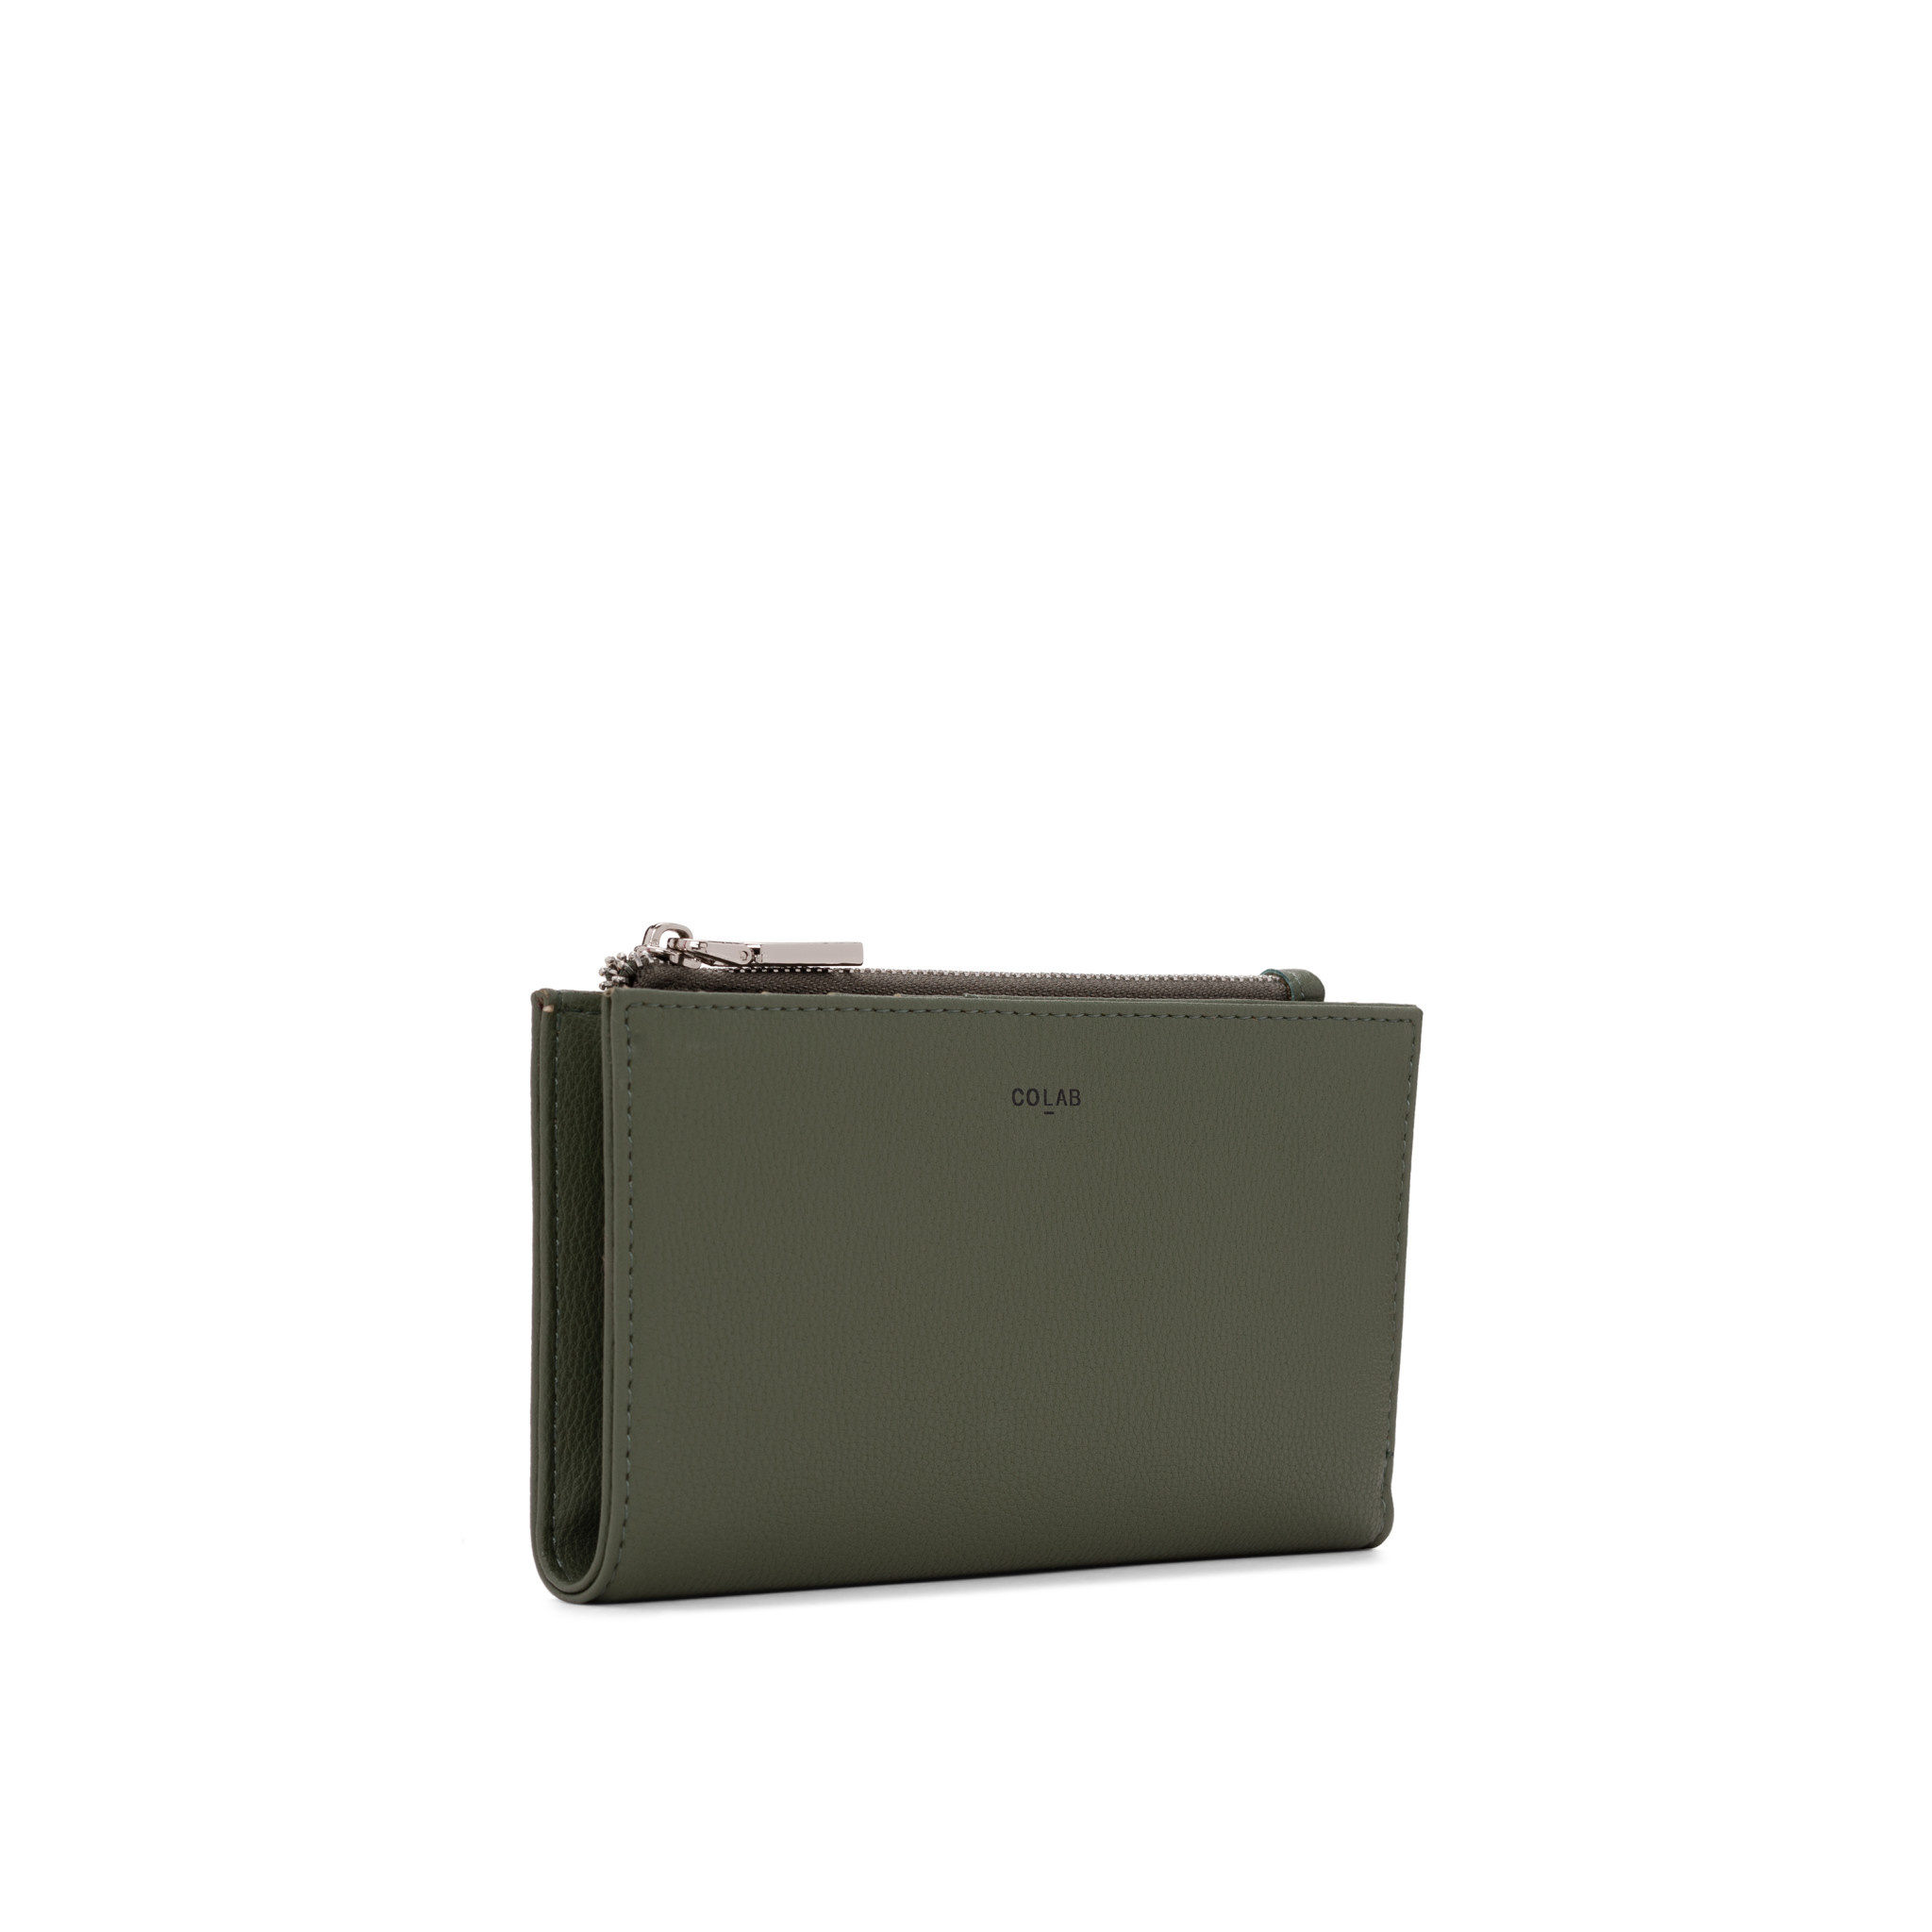 Colab Colab May Pebble 2.0 Wallet (#6421) - Olive